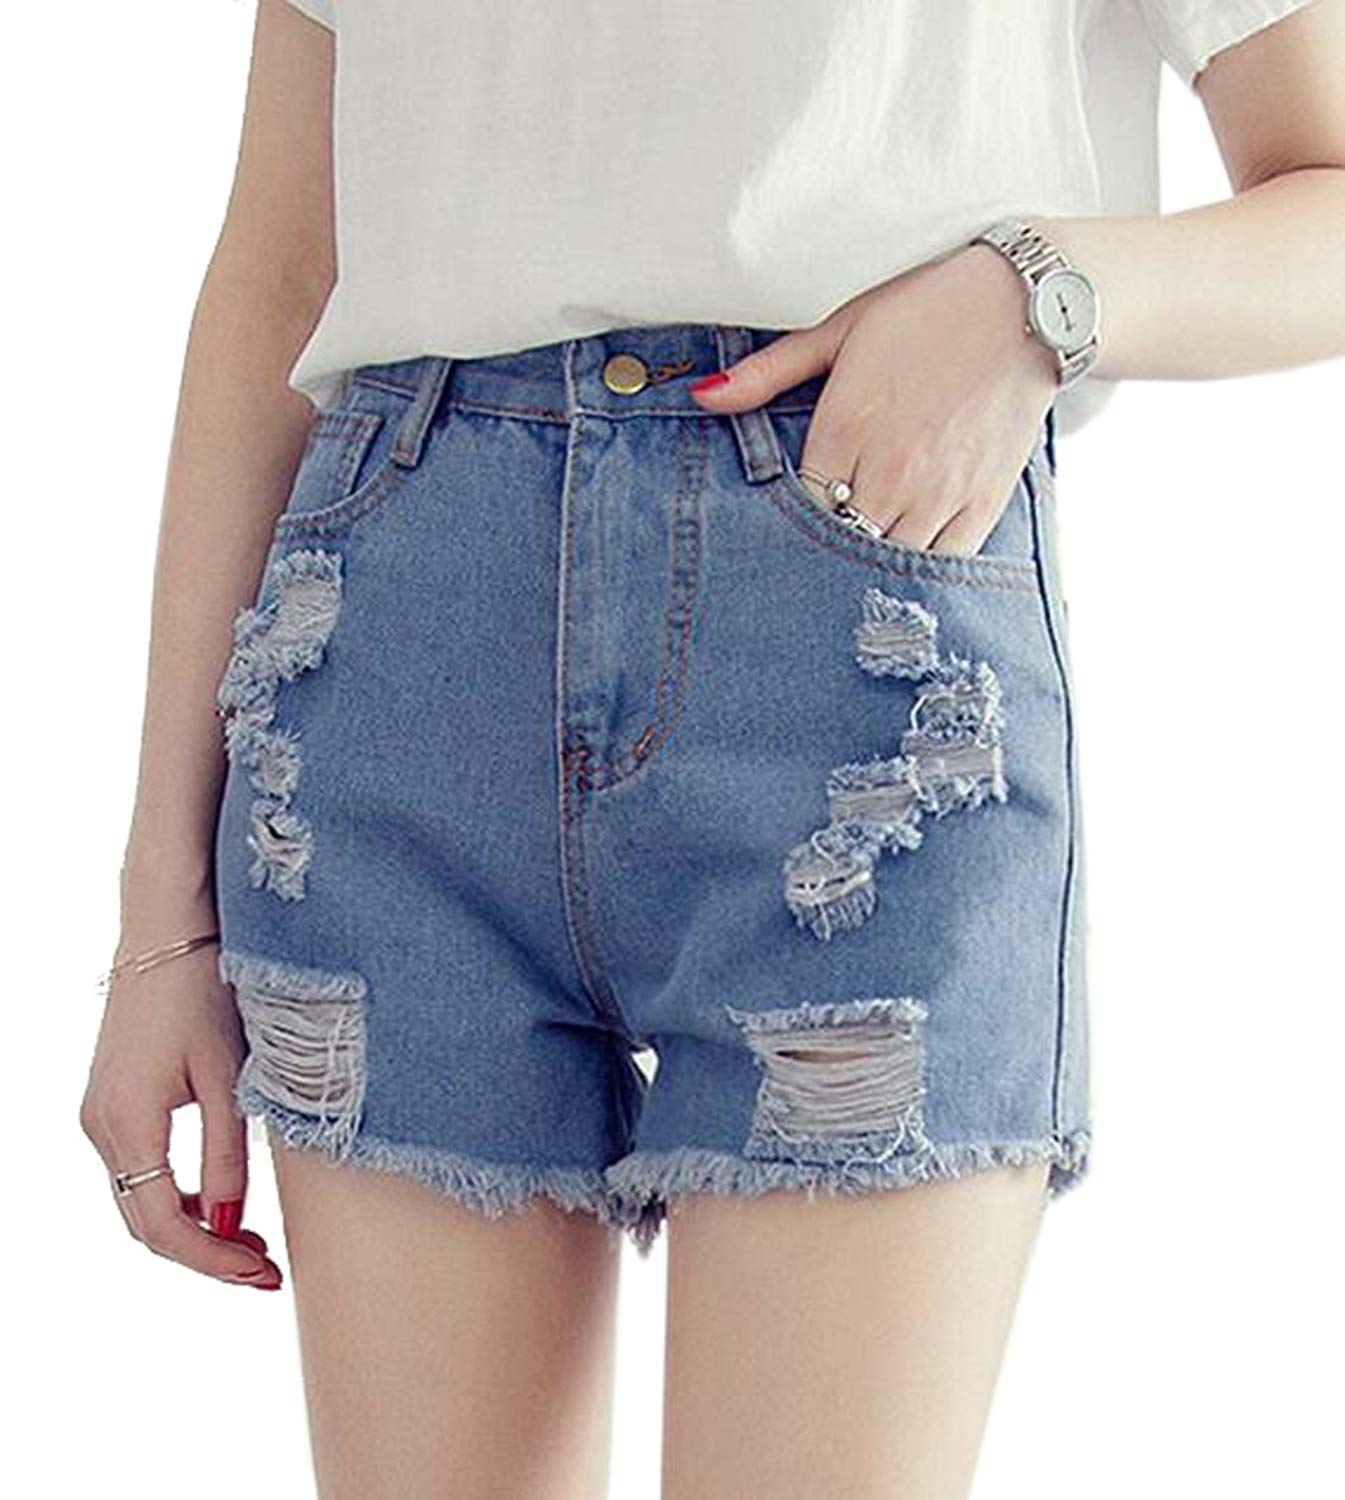 3ef08d72c4 Get Quotations · LD Womens Stylish Denim Shorts High Waist Distressed  Summer Jeans Shorts